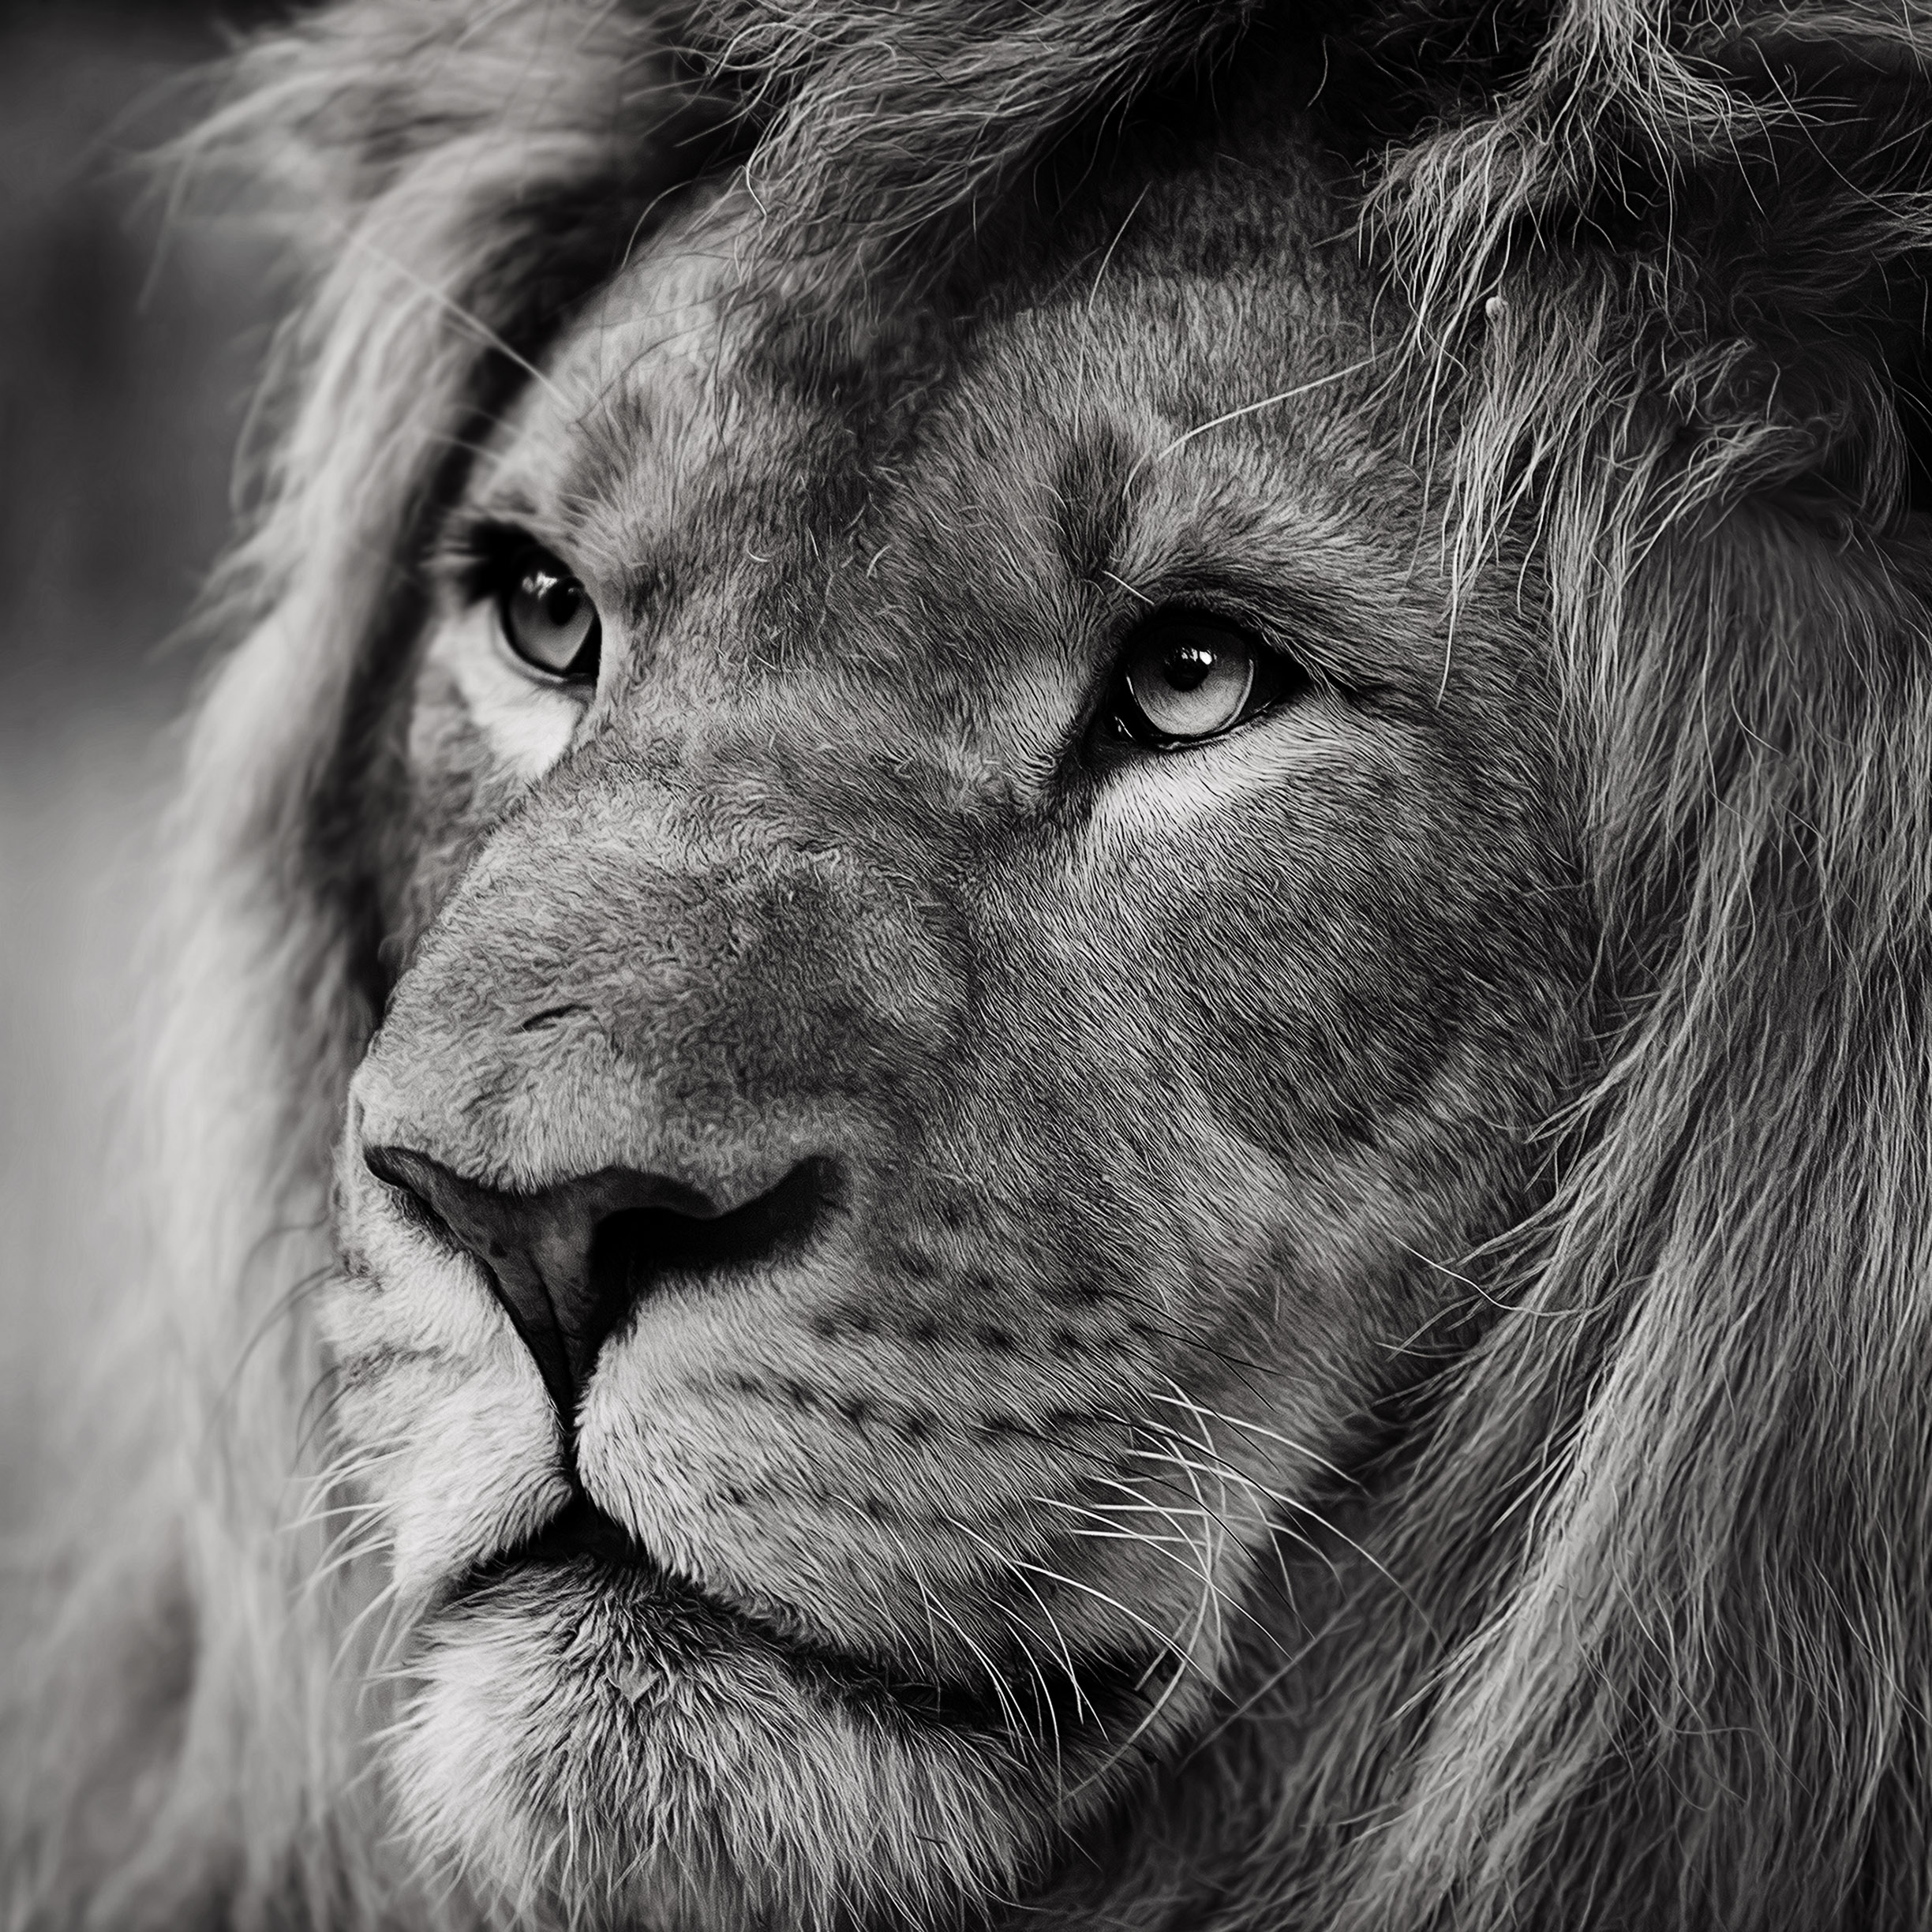 Lion wallpapers for iphone and ipad for Sfondi leone